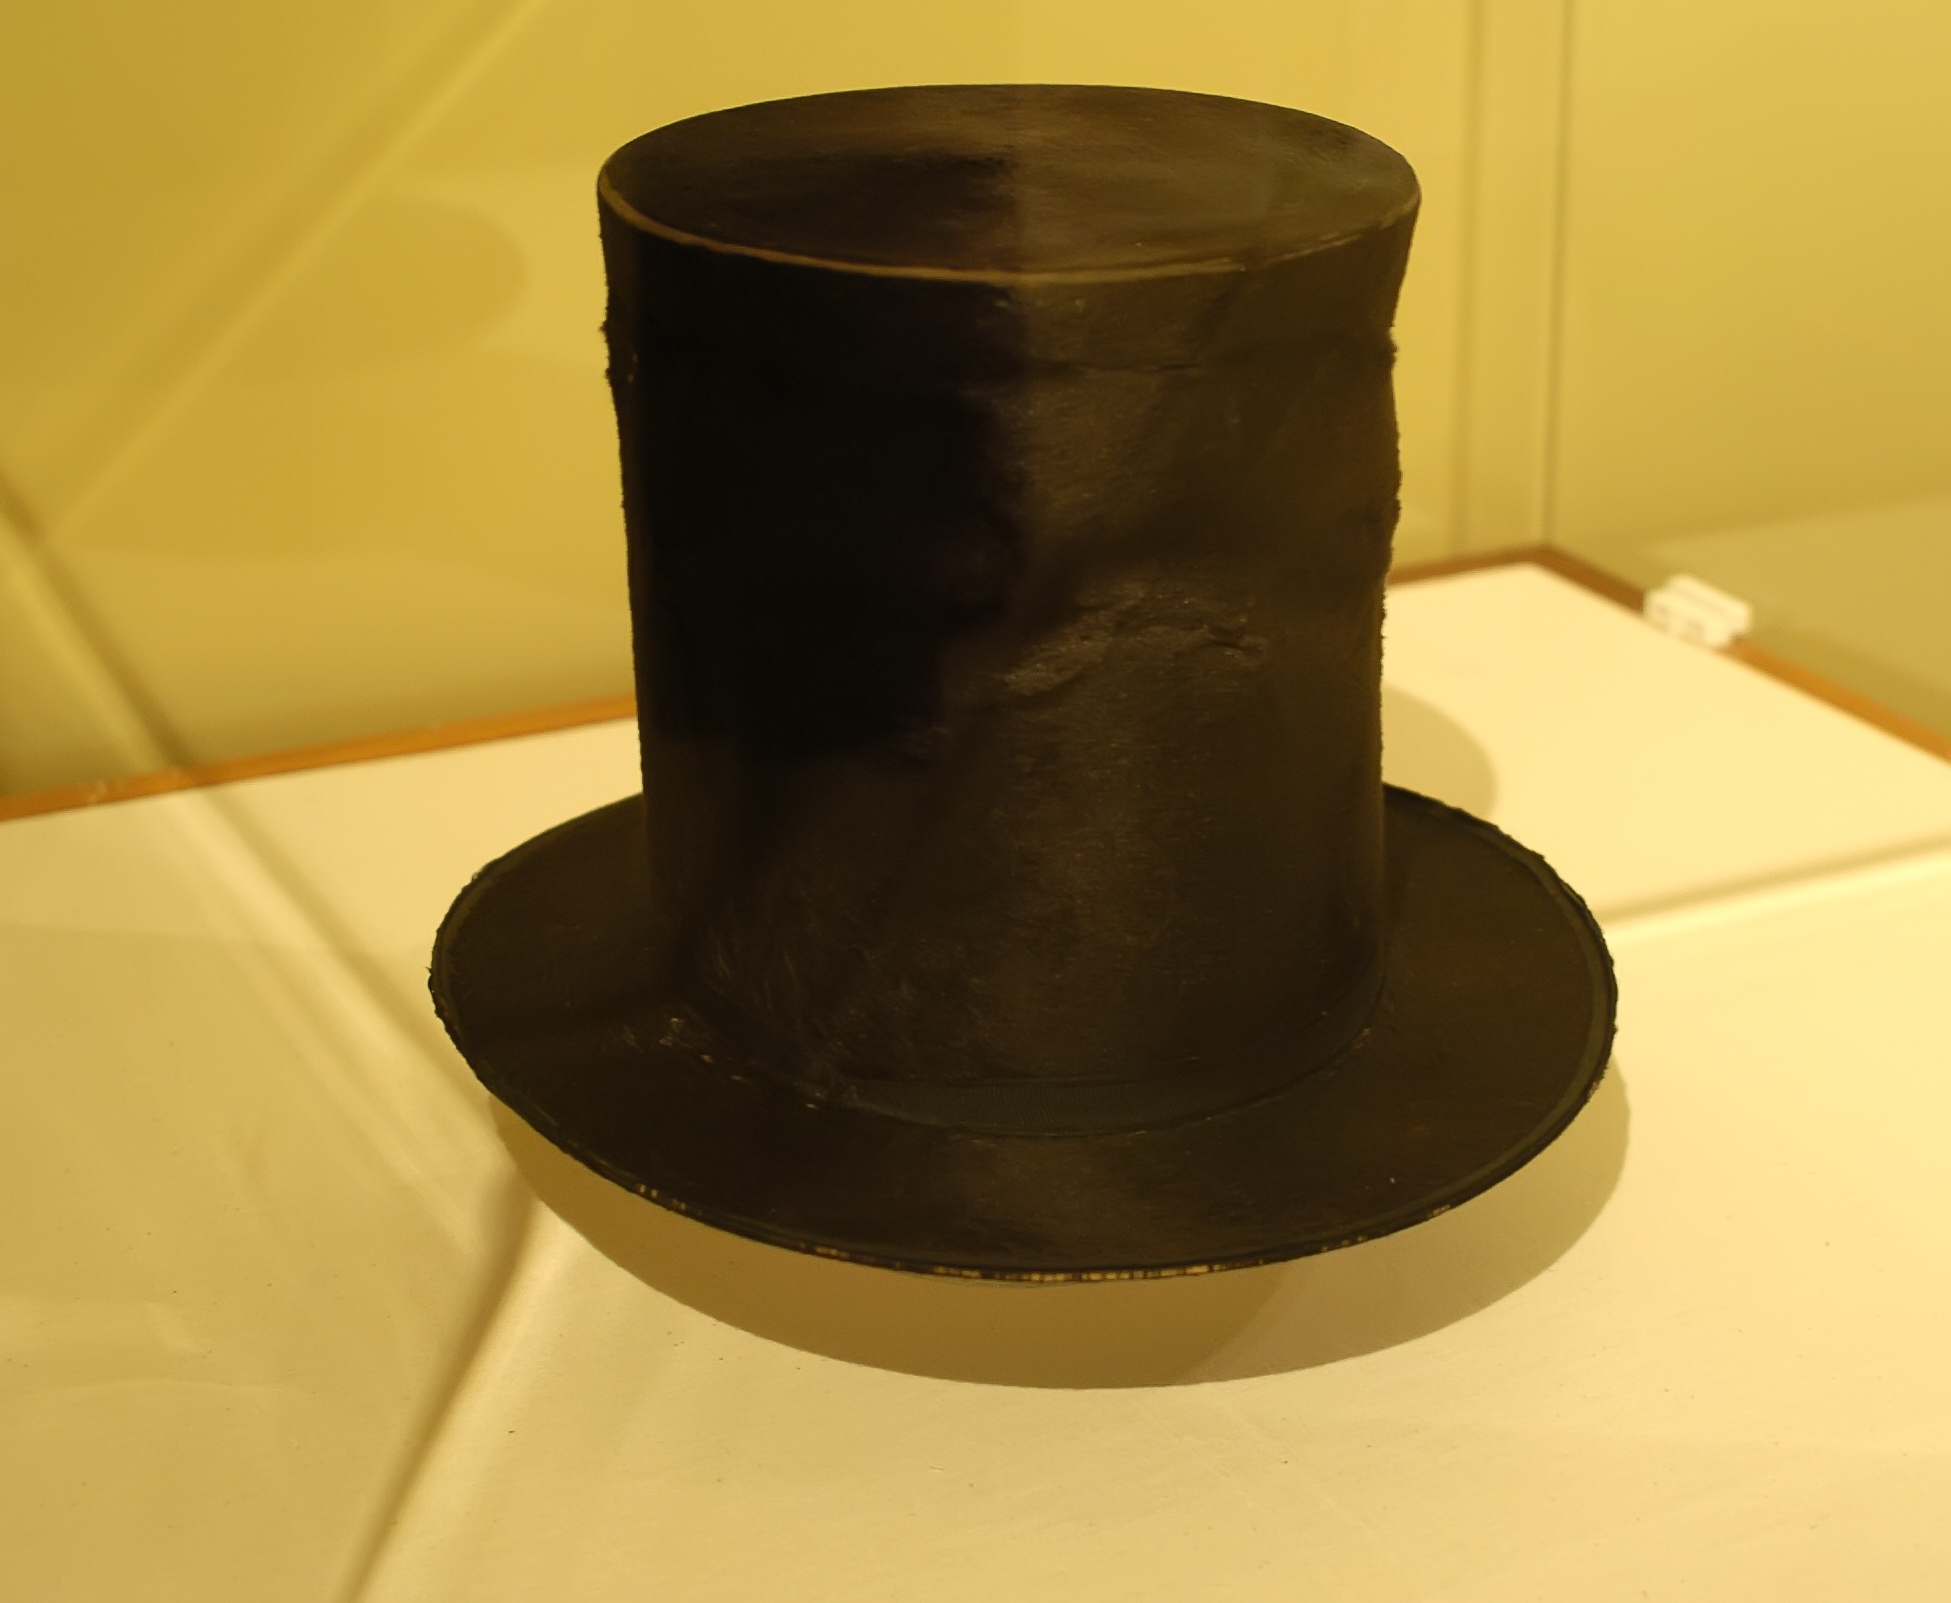 President Abraham Lincoln's stovepipe hat will be on display at the Lyndon B. Johnson Presidential Library through the month of April. Photo credit: Hildene, The Lincoln Family Home, Manchester, Vermont.